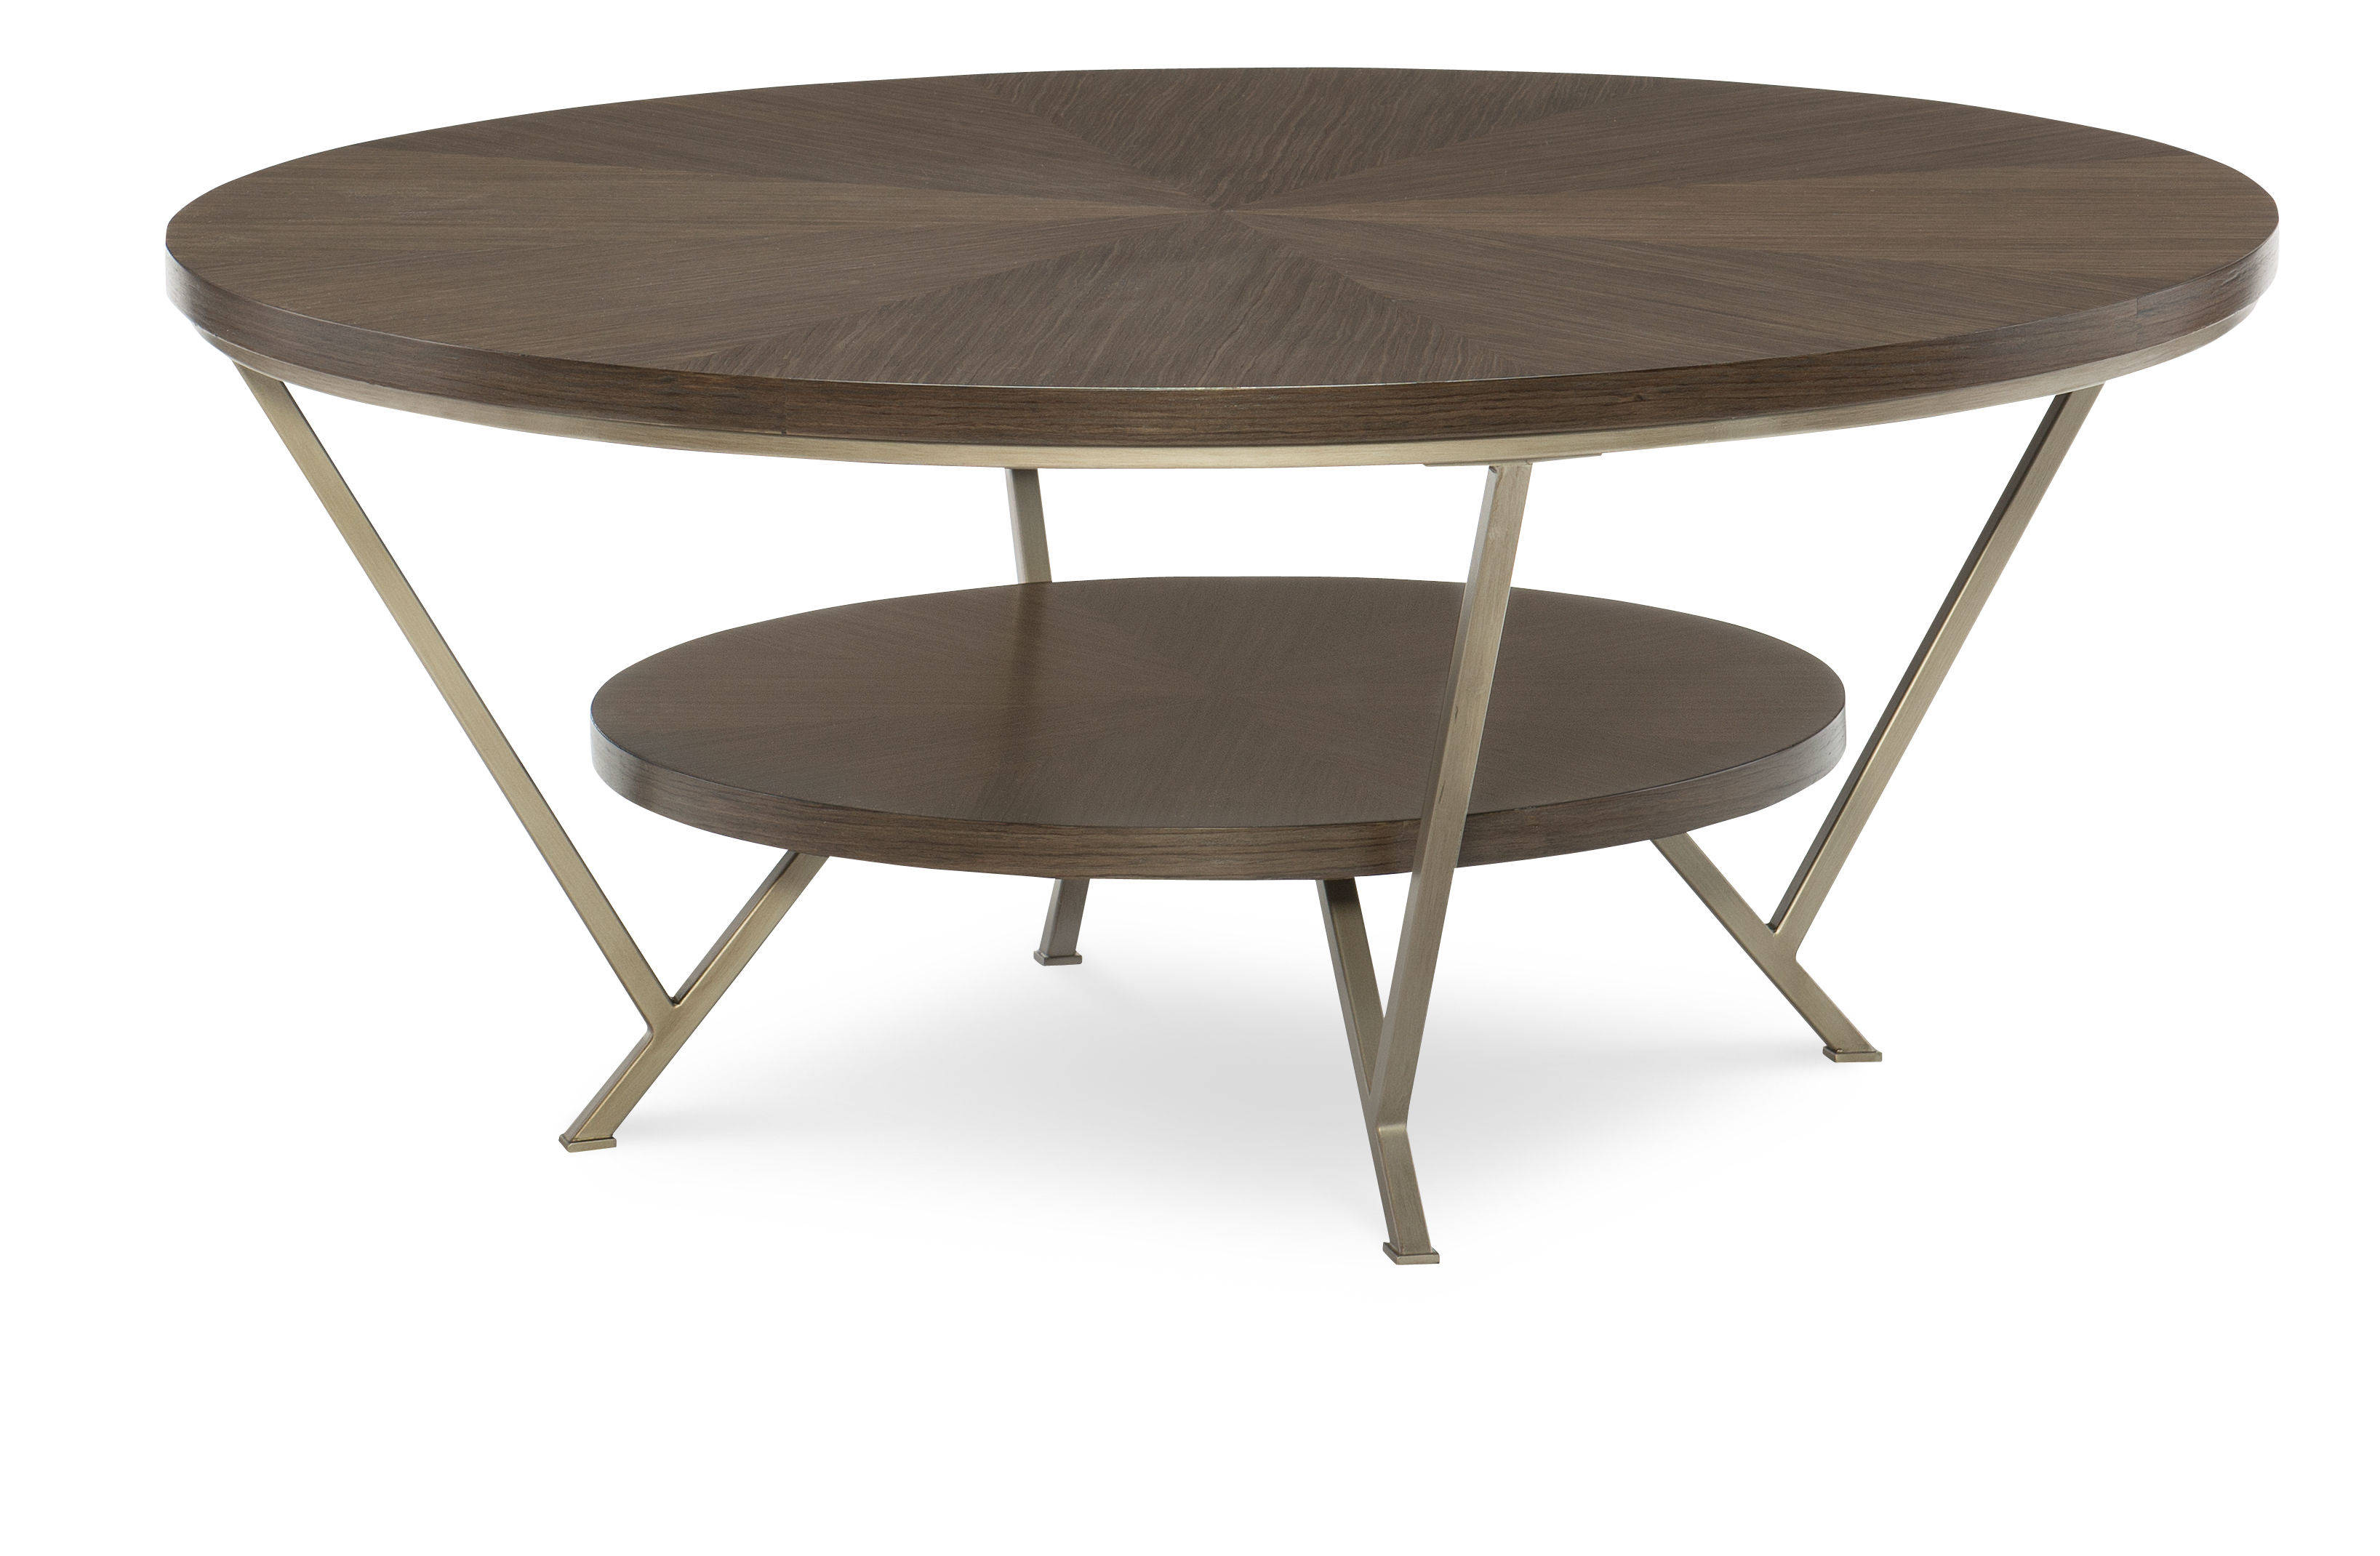 Legacy Furniture Soho By Rachael Ray Ash Tail Table